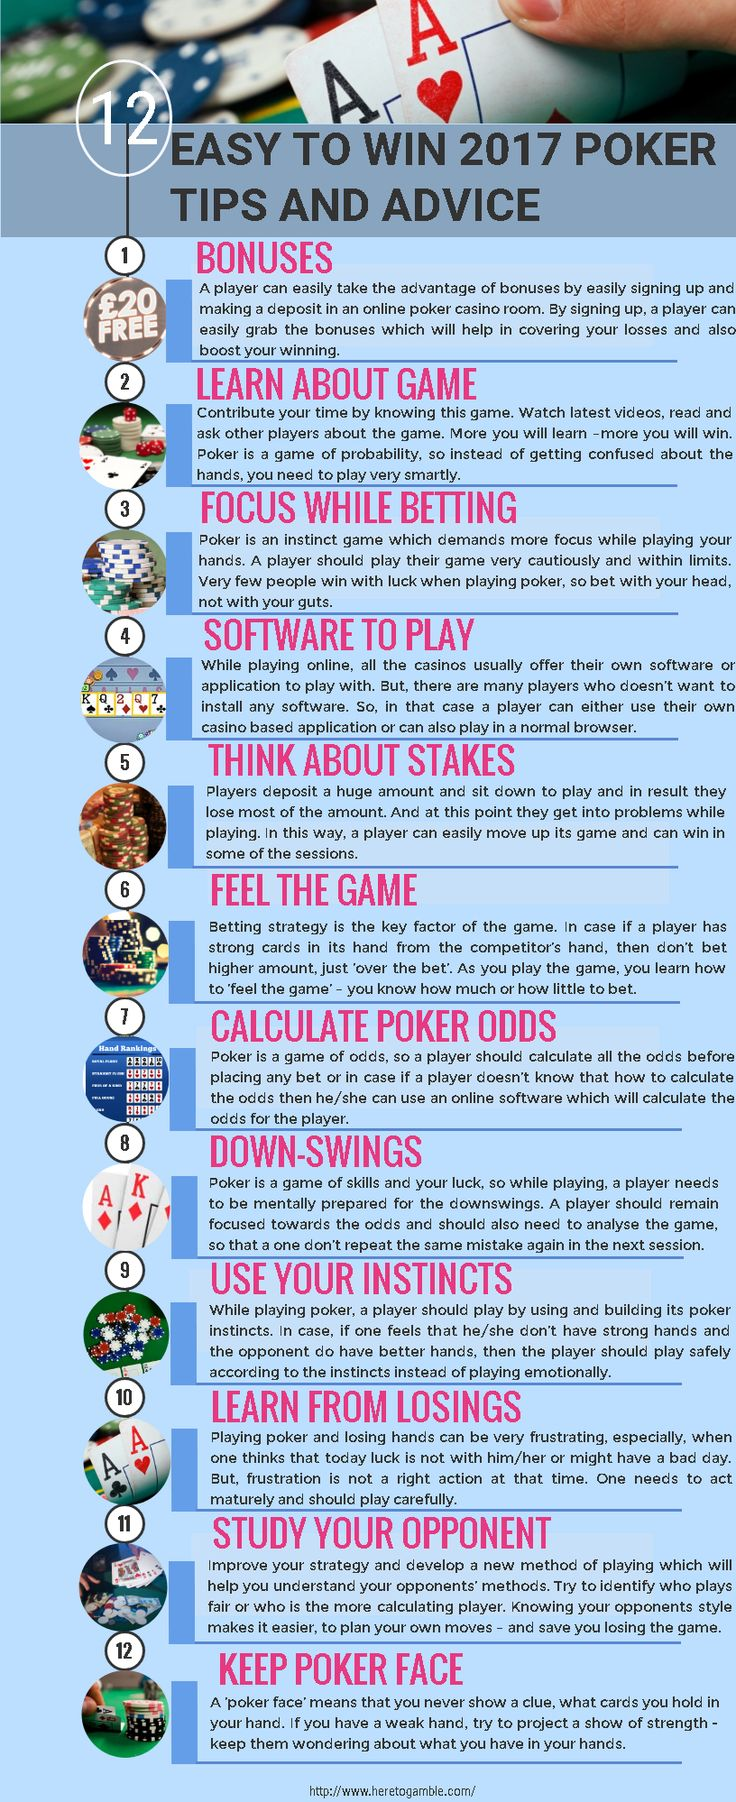 Crossword clues for GAMBLING CARD GAME